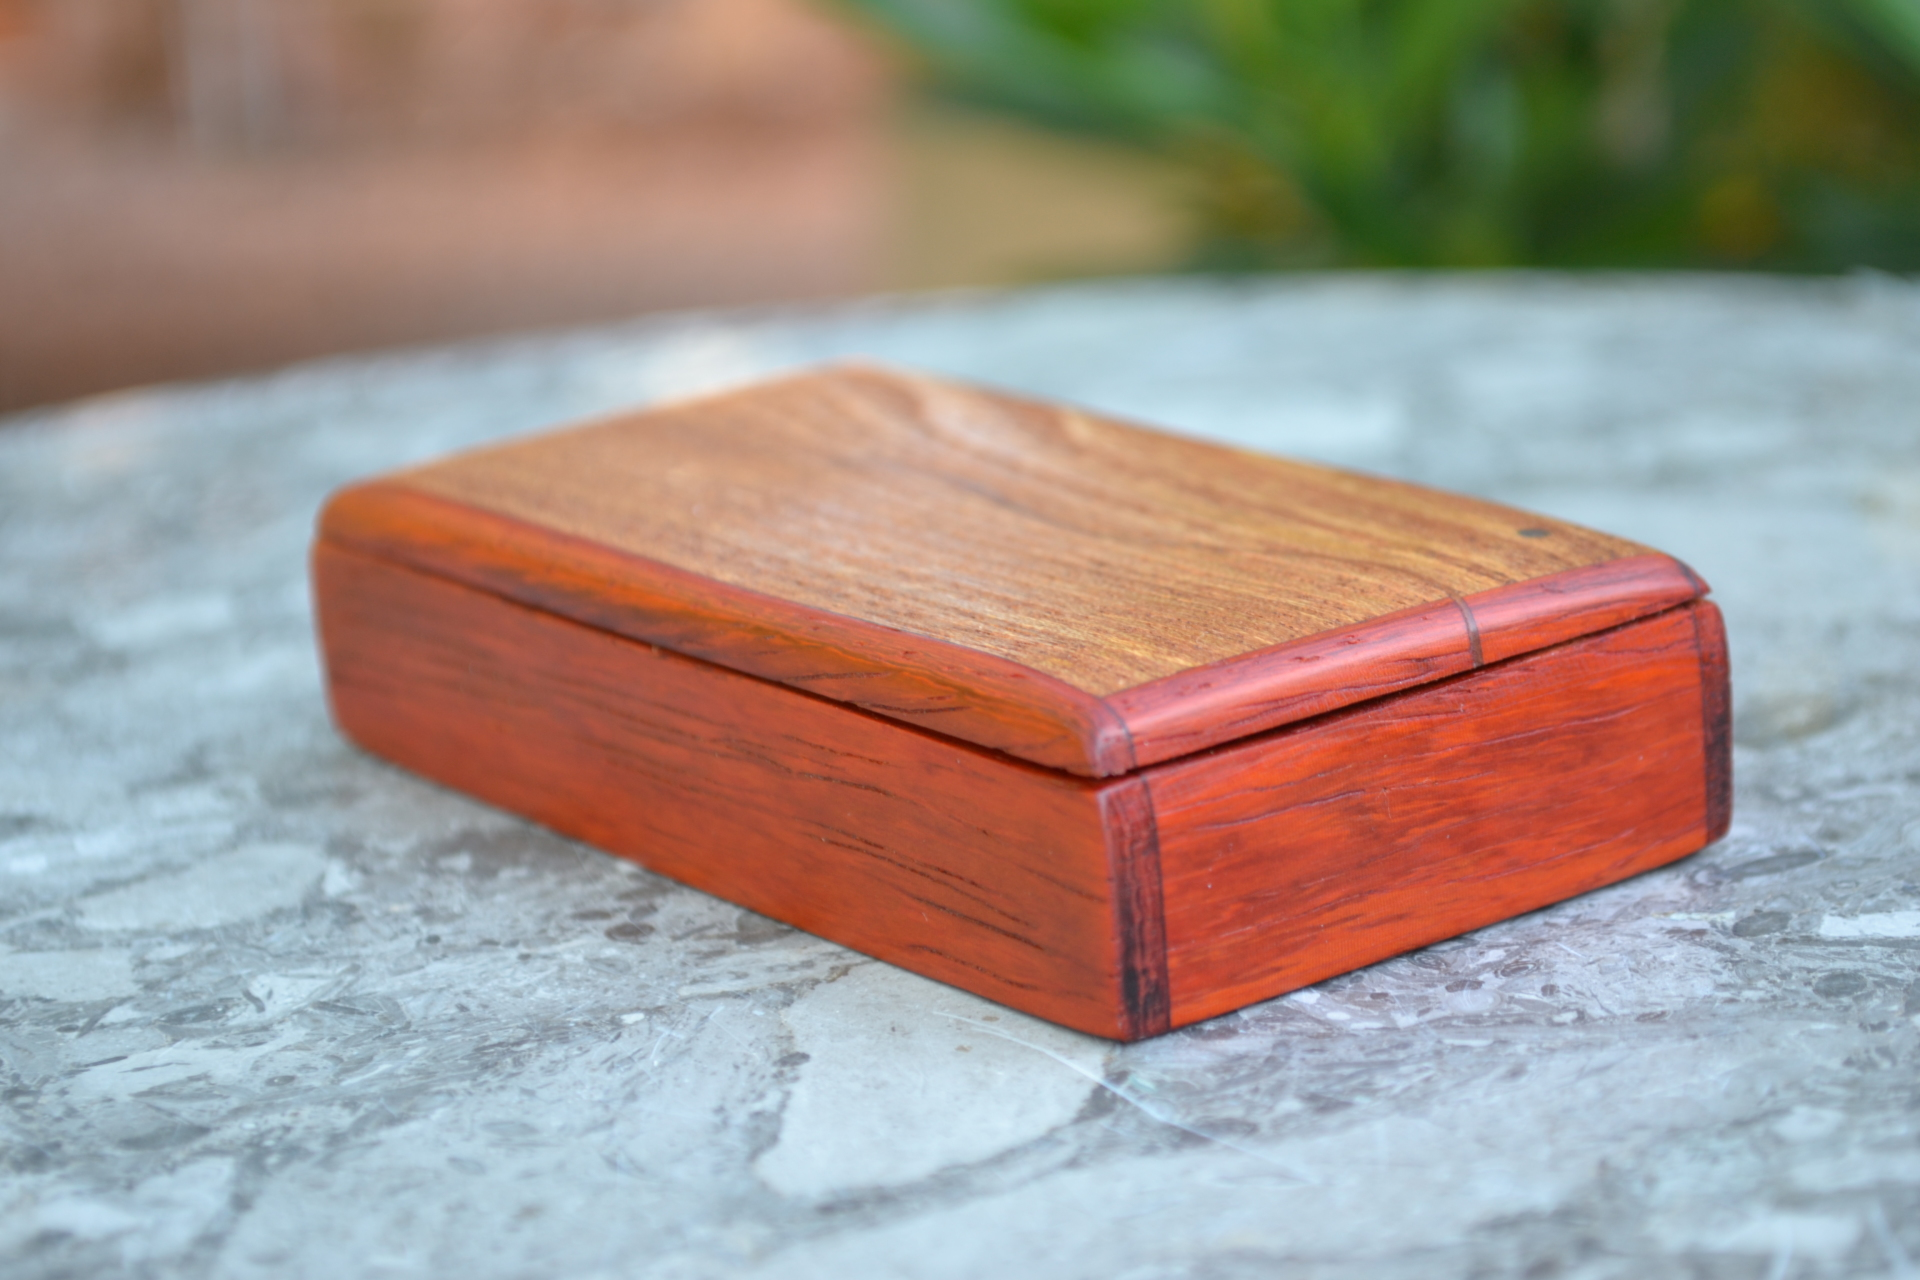 Hand-crafted wooden box